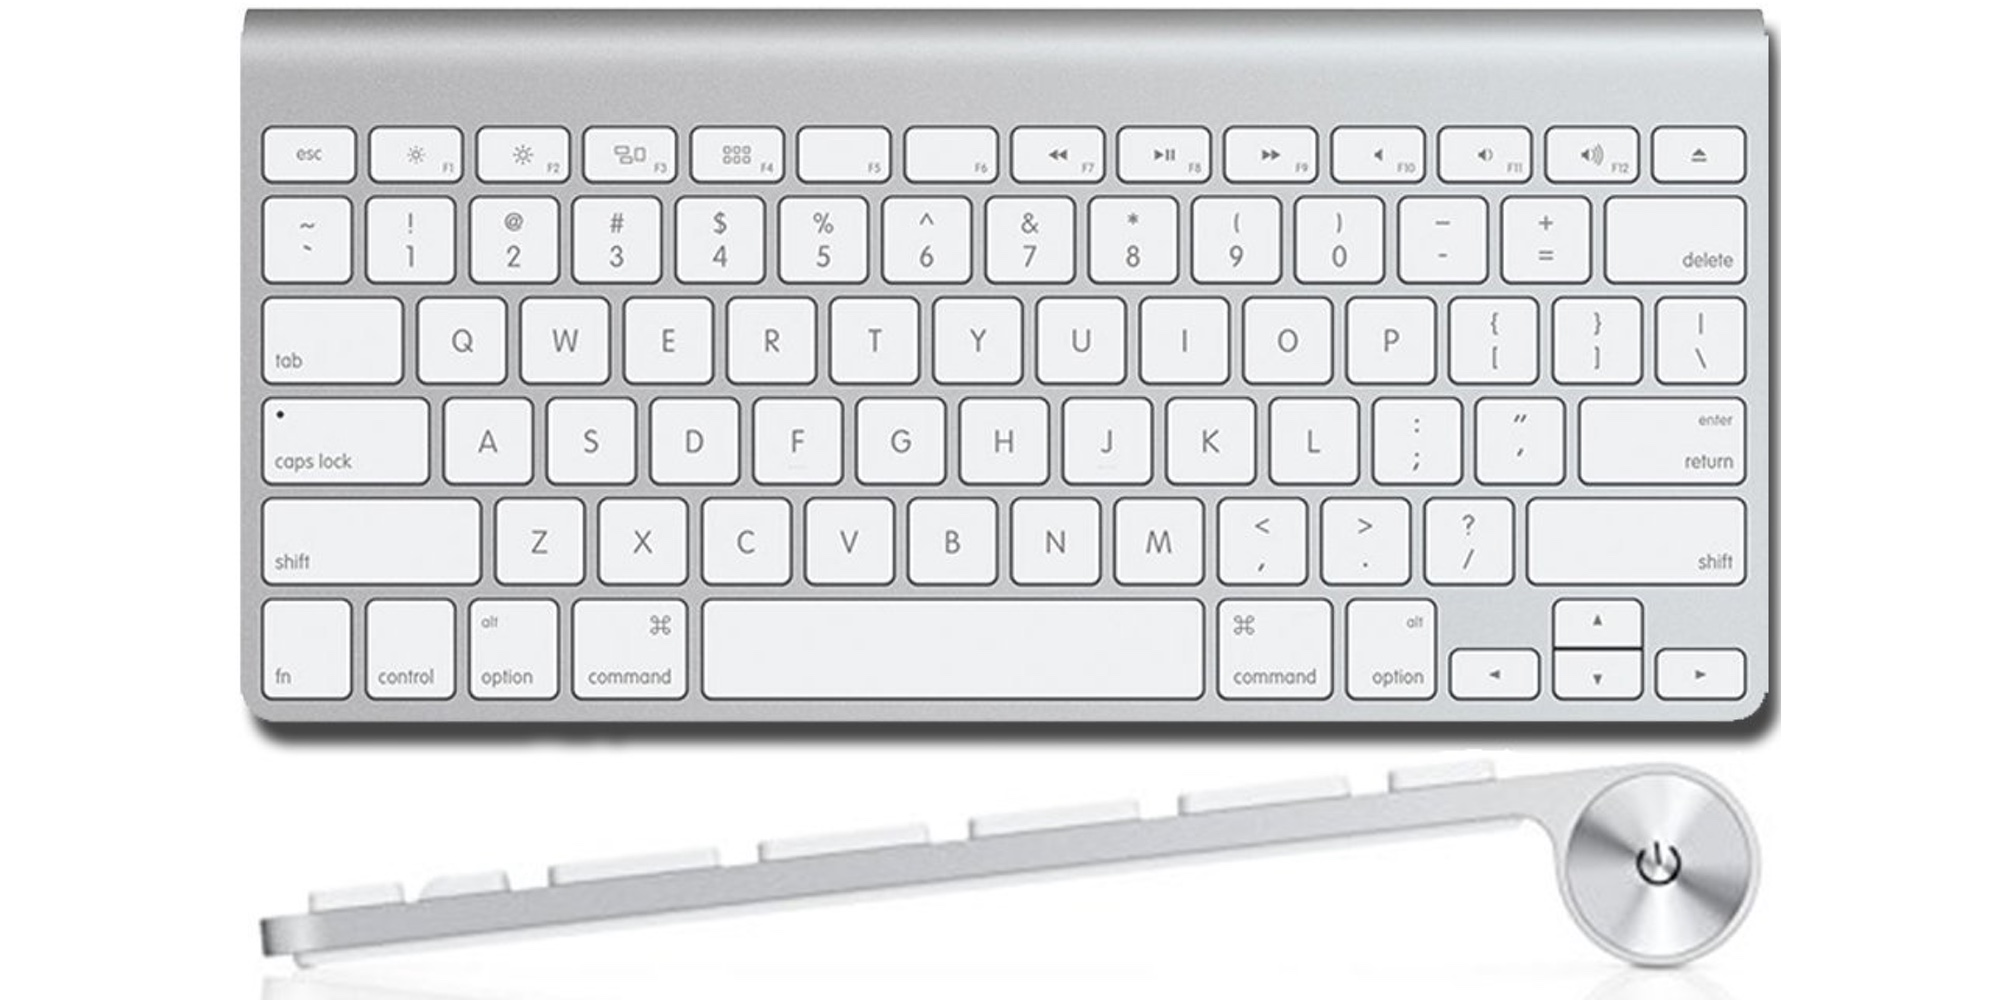 Control it all with Apple's Bluetooth Keyboard for $29 (Open-Box, Reg. $70)